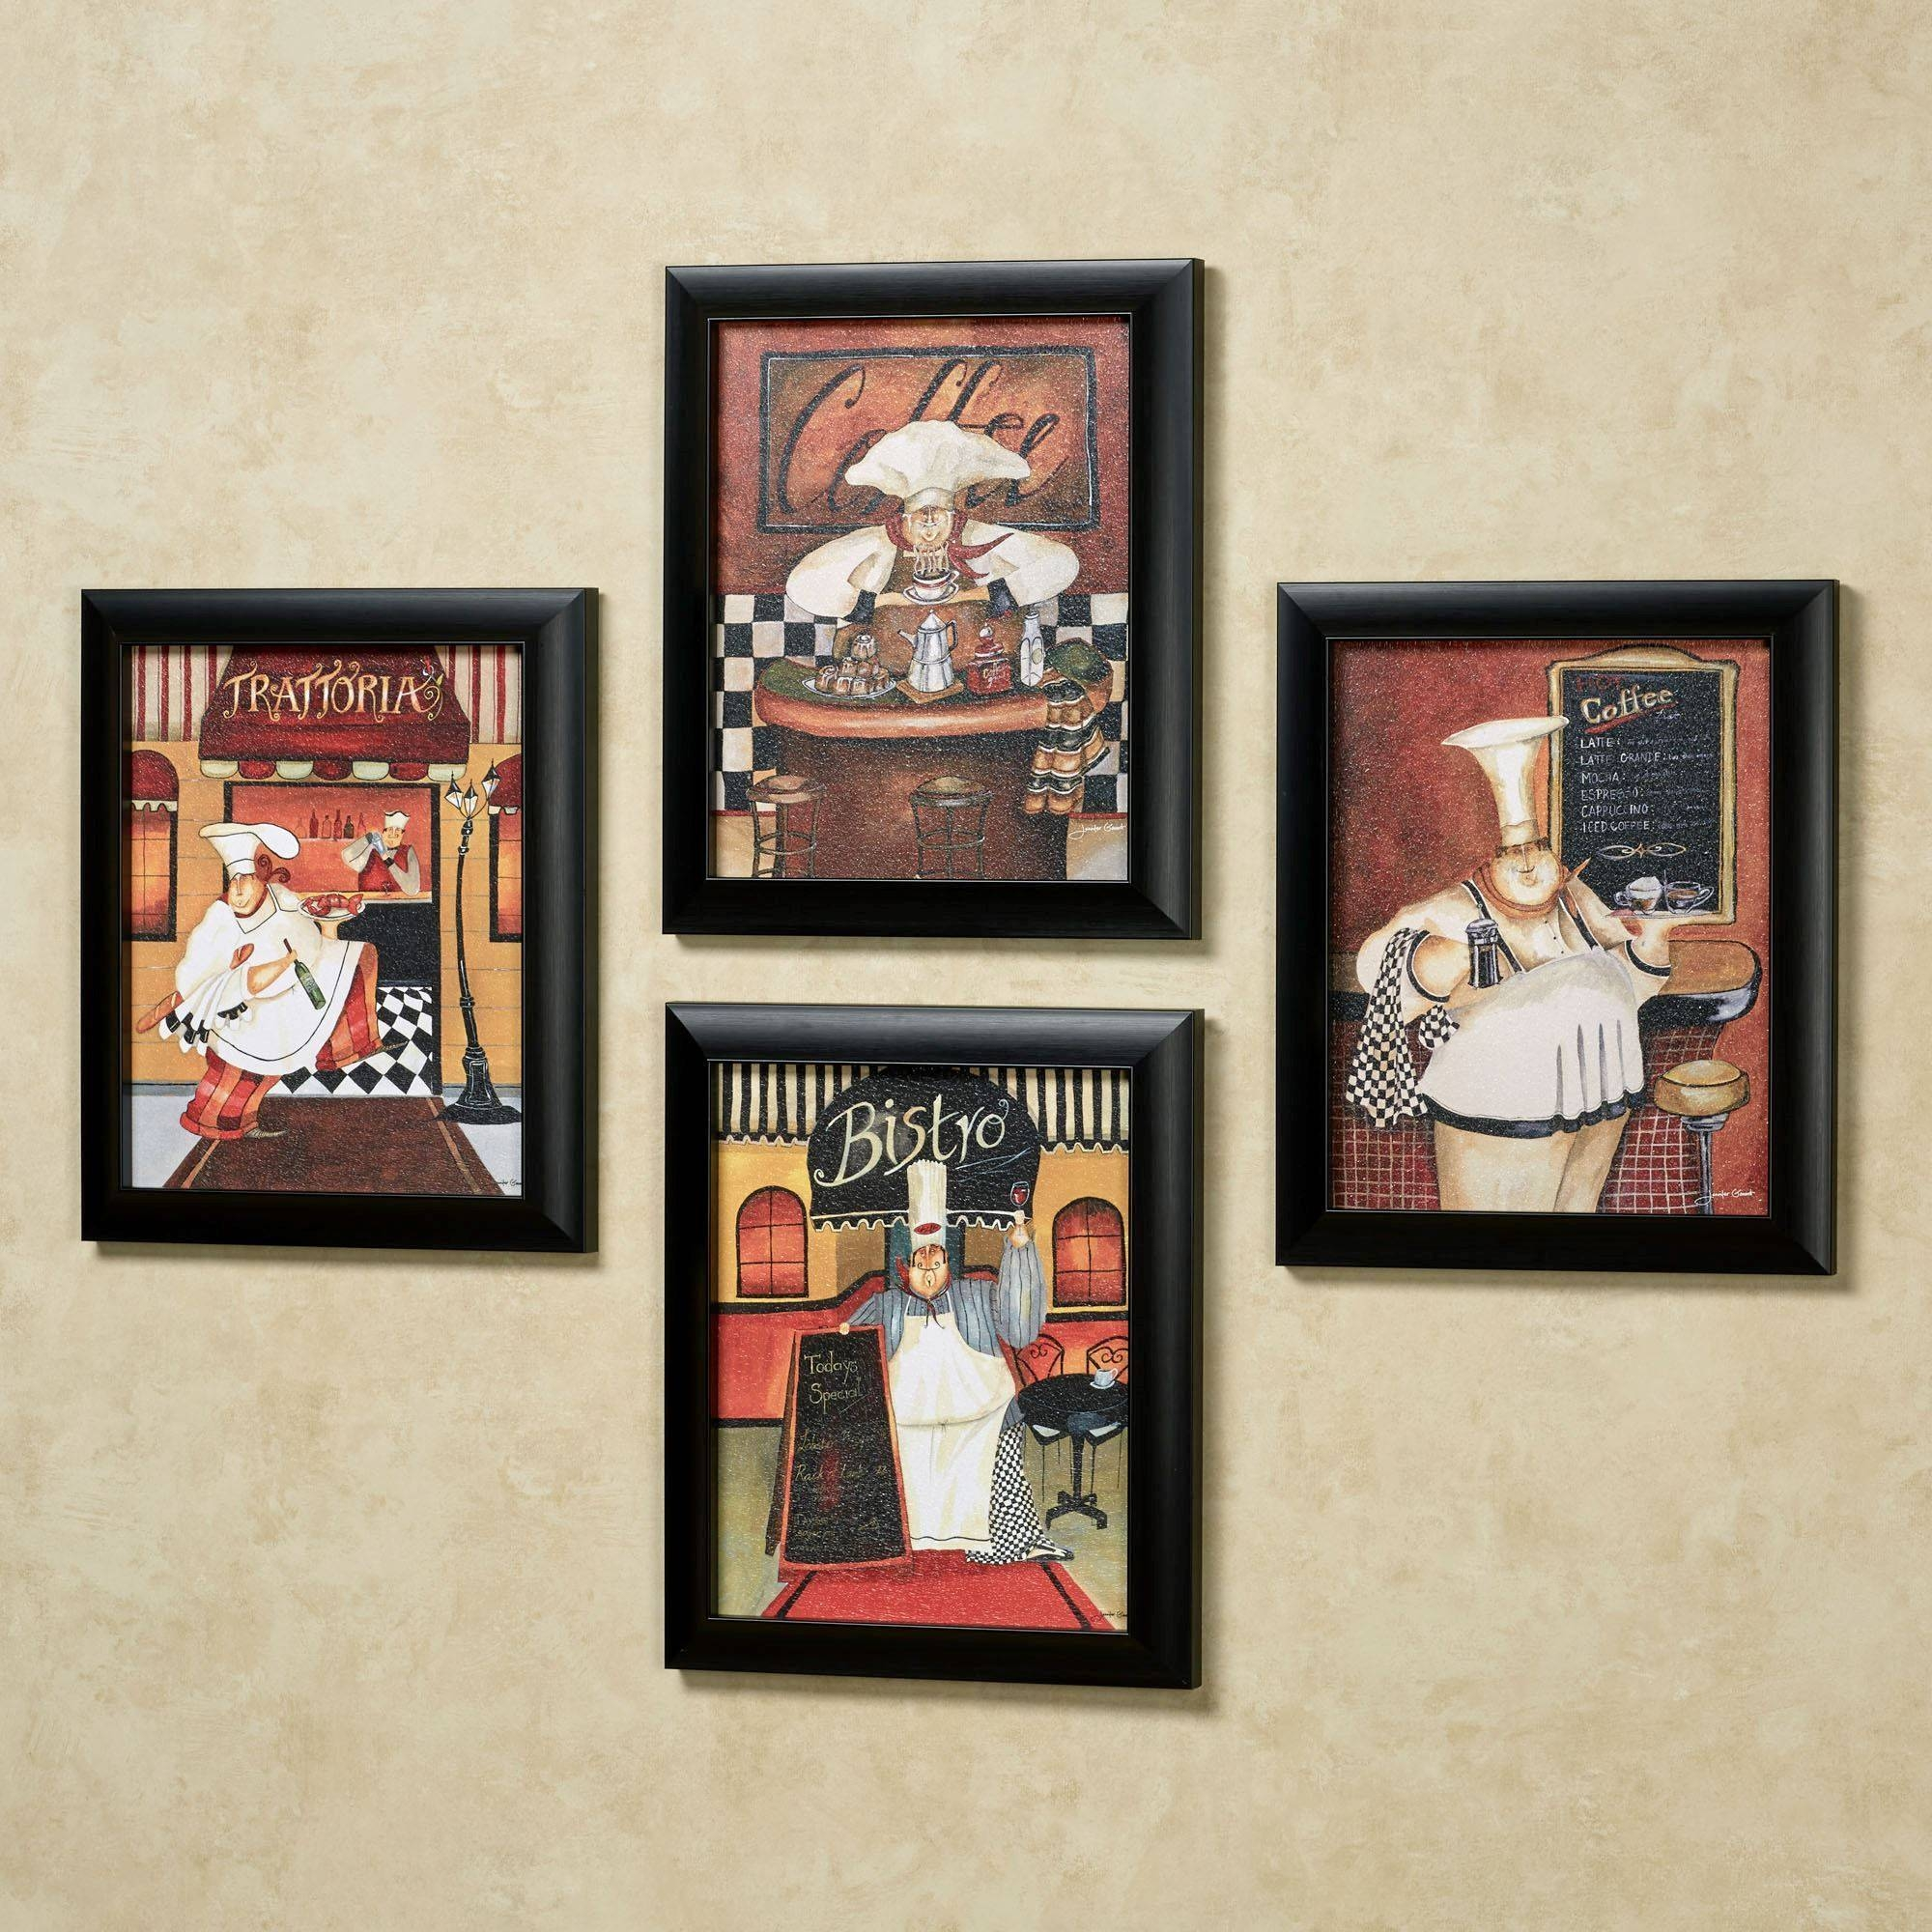 Sonoma Chef Framed Wall Art Set Within Most Current Kitchen Wall Art Sets (View 8 of 15)